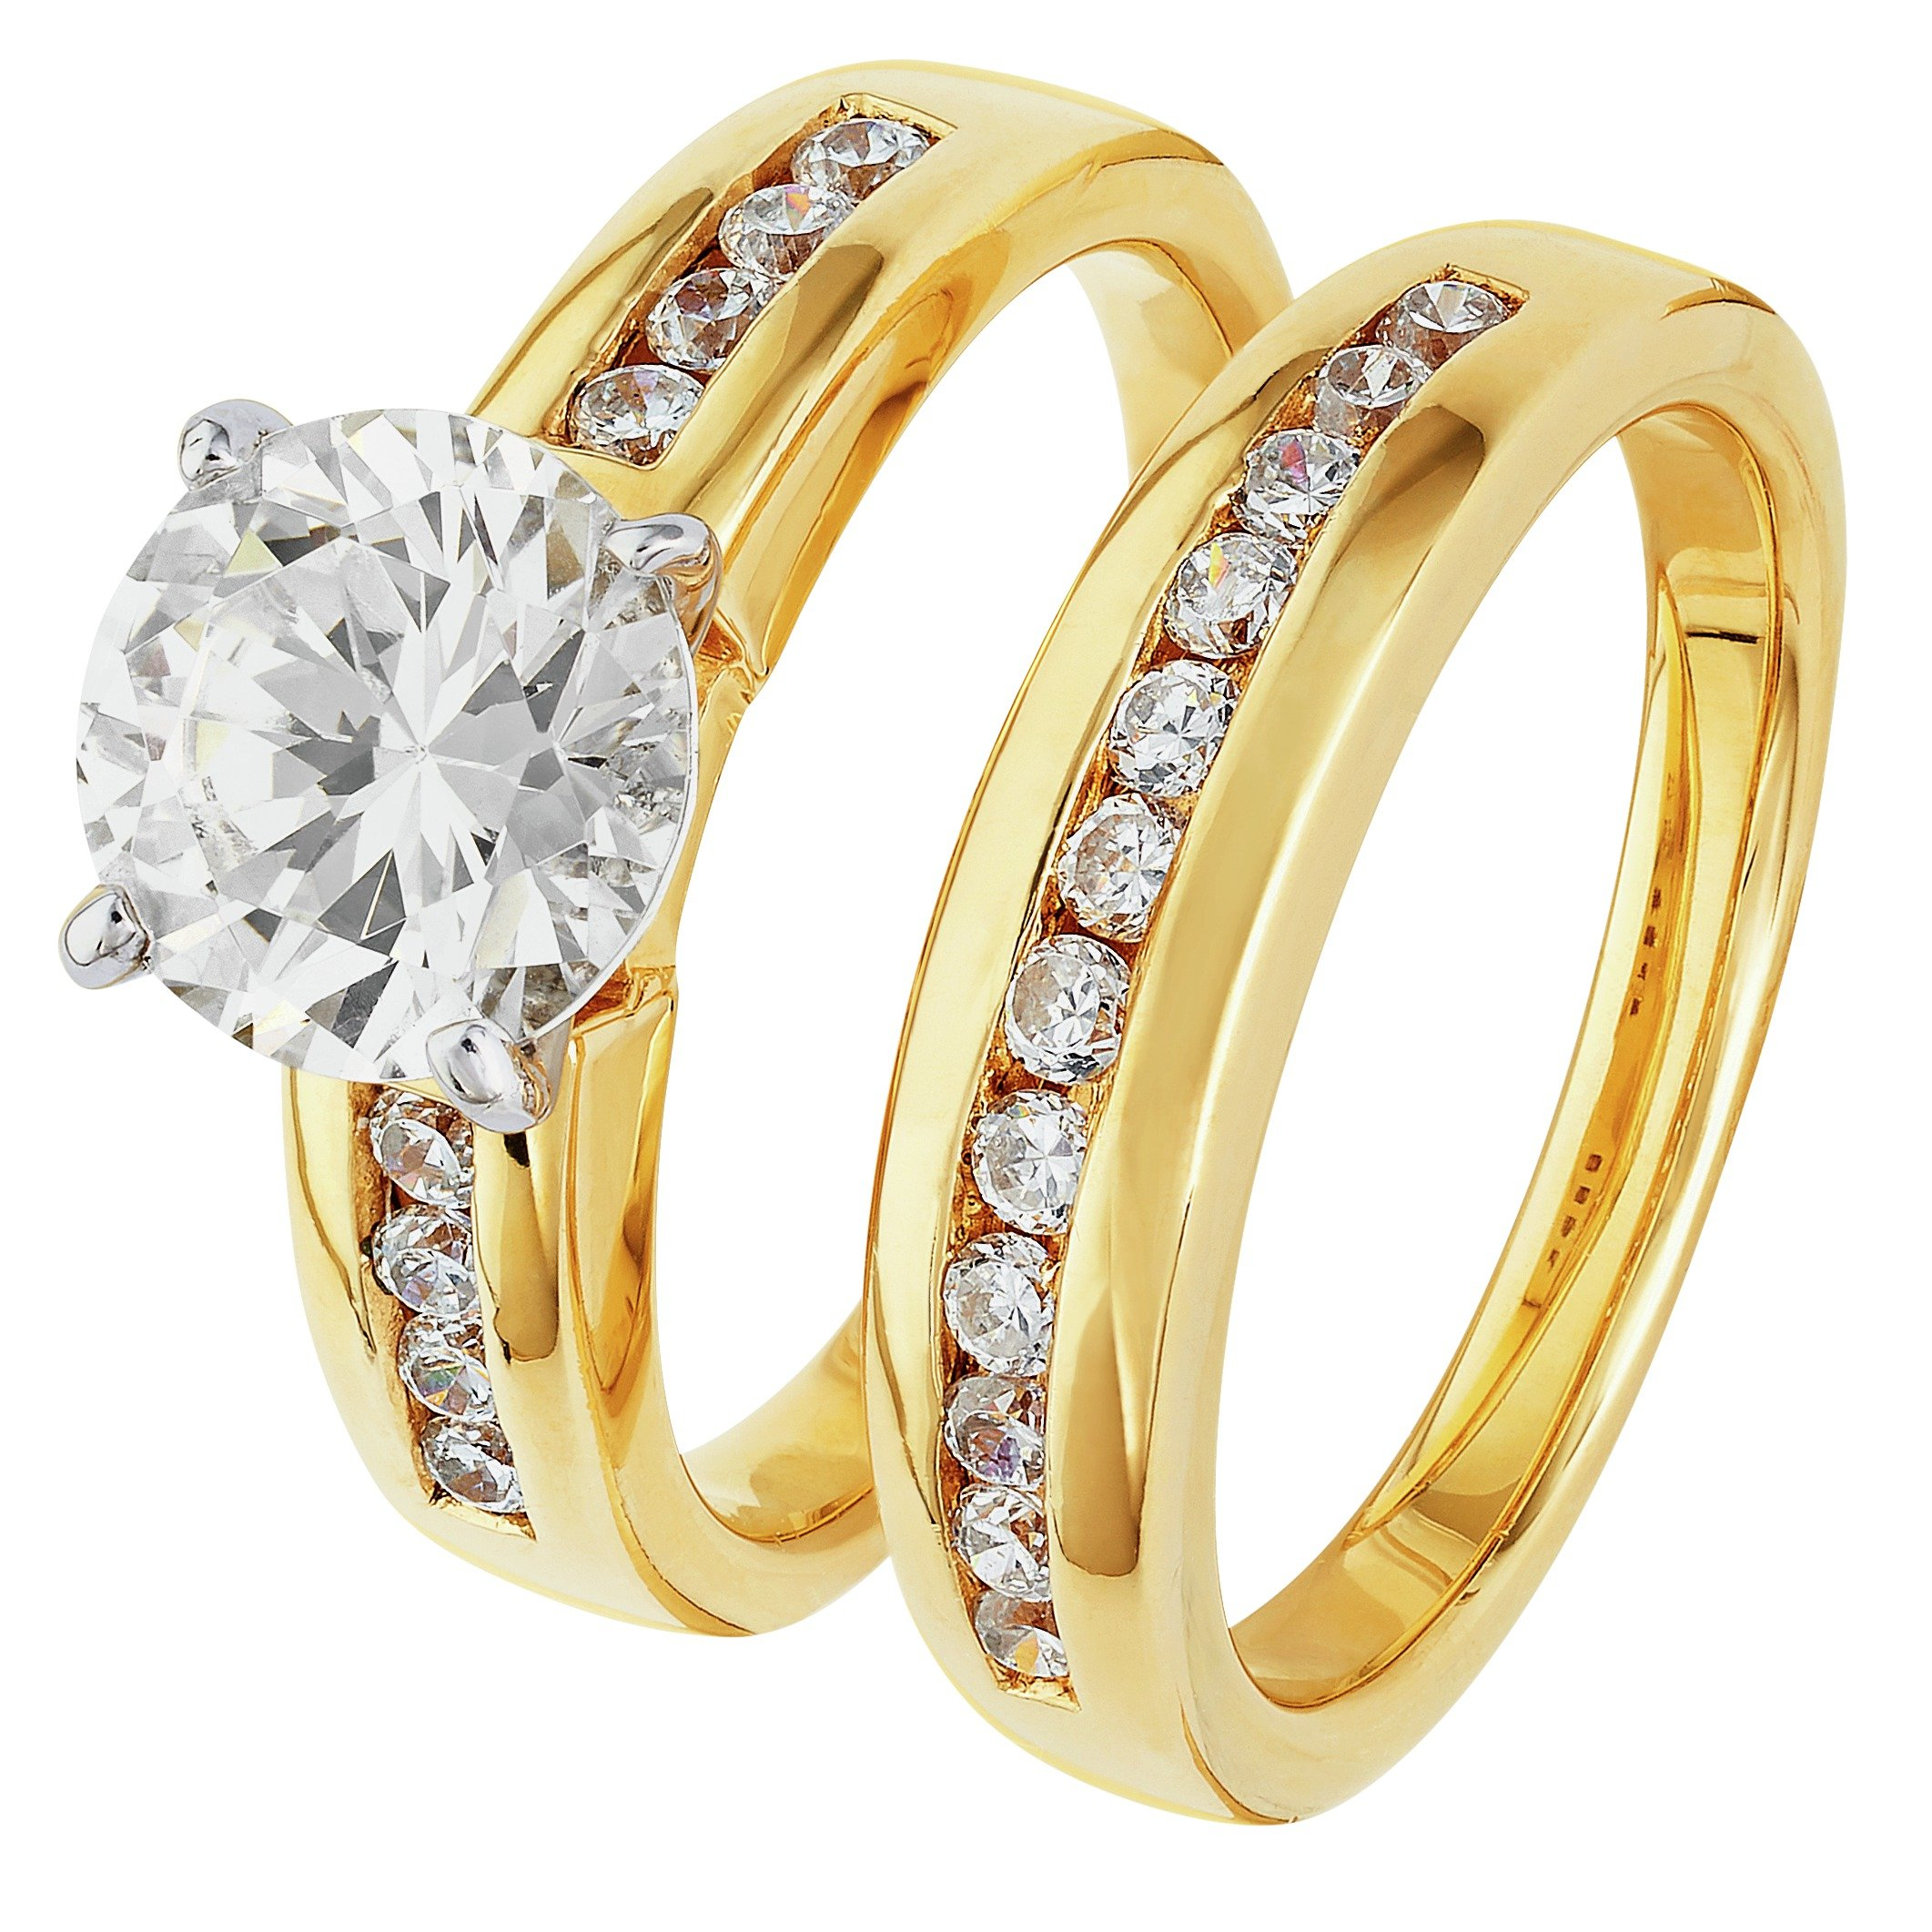 Buy Revere 18ct Gold Plated Silver 2 00ct Look CZ Ring Set at